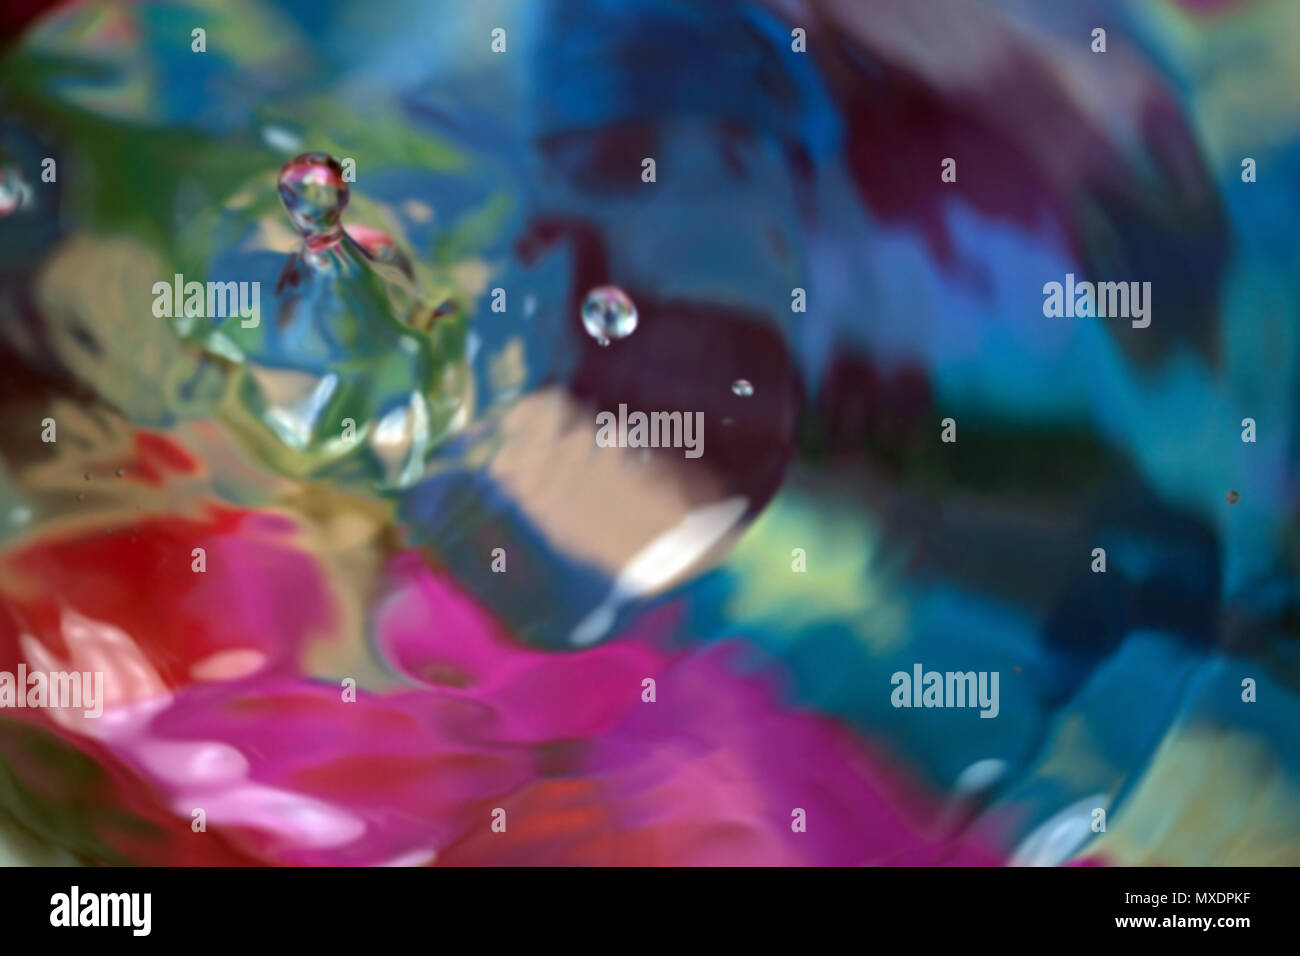 Color motion drop in water, abstraction blurred - Stock Image